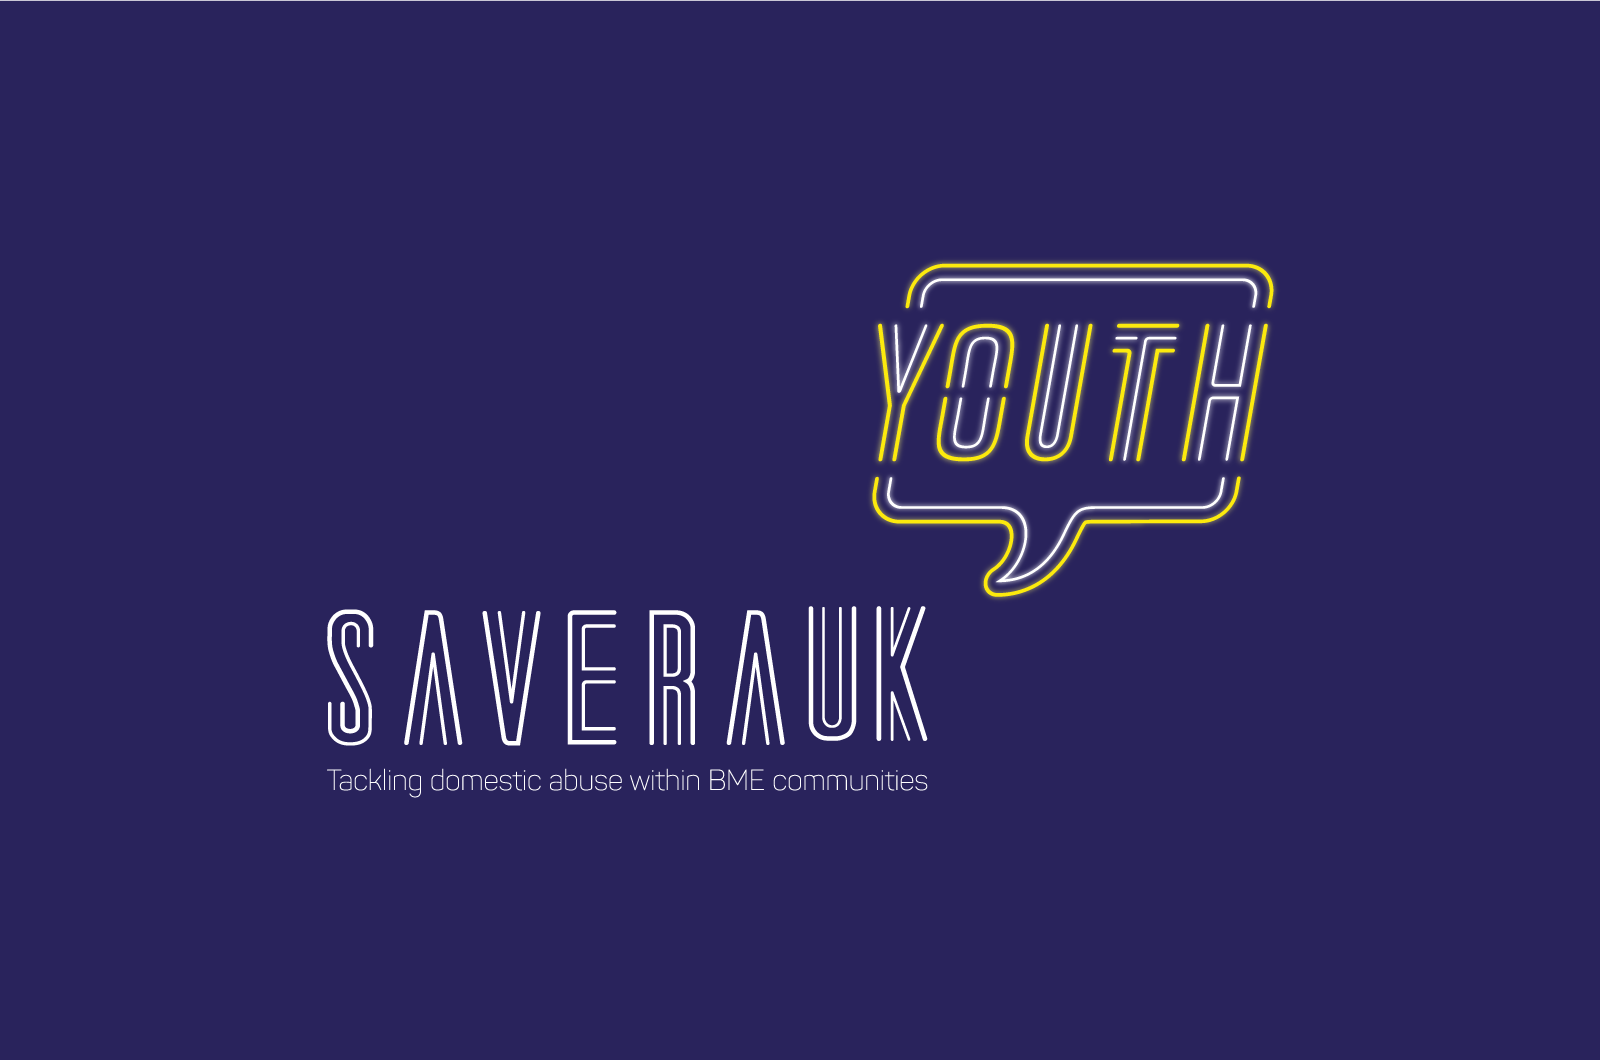 Savera Youth Brand Neon 04